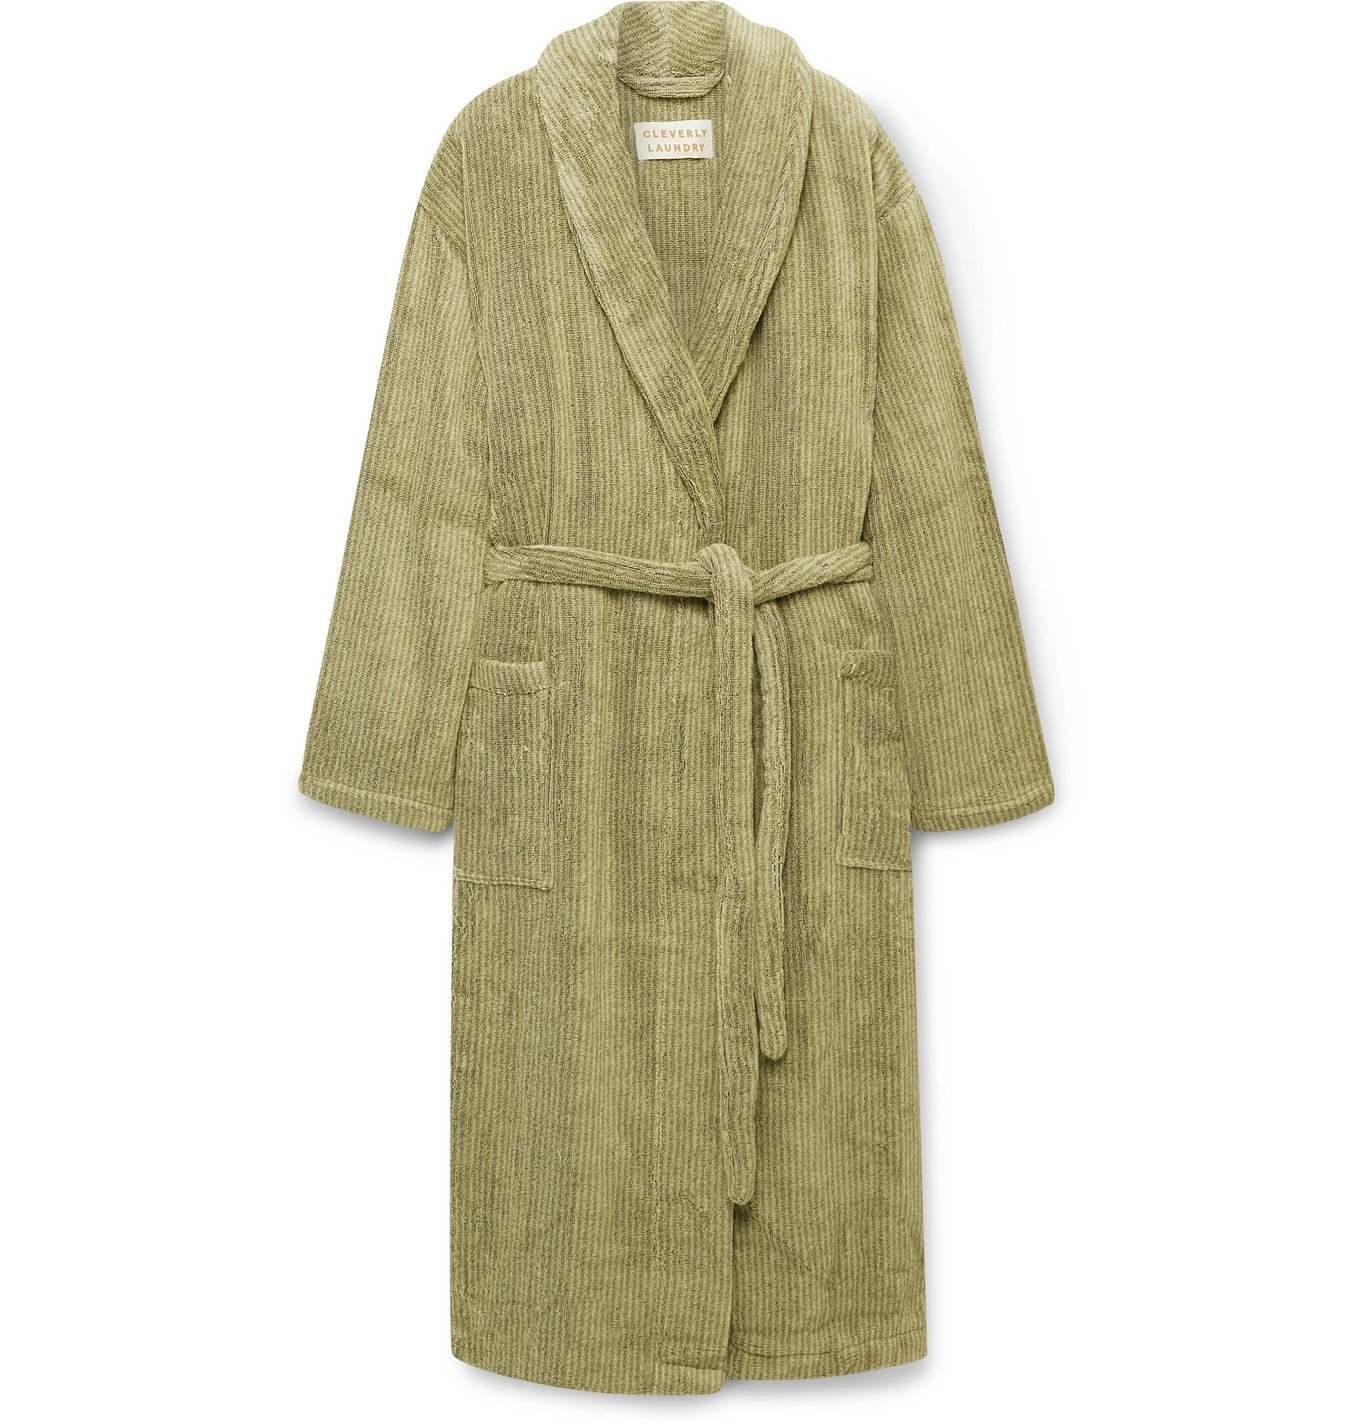 Cleverly Laundry - Striped Cotton-Terry Robe - Green